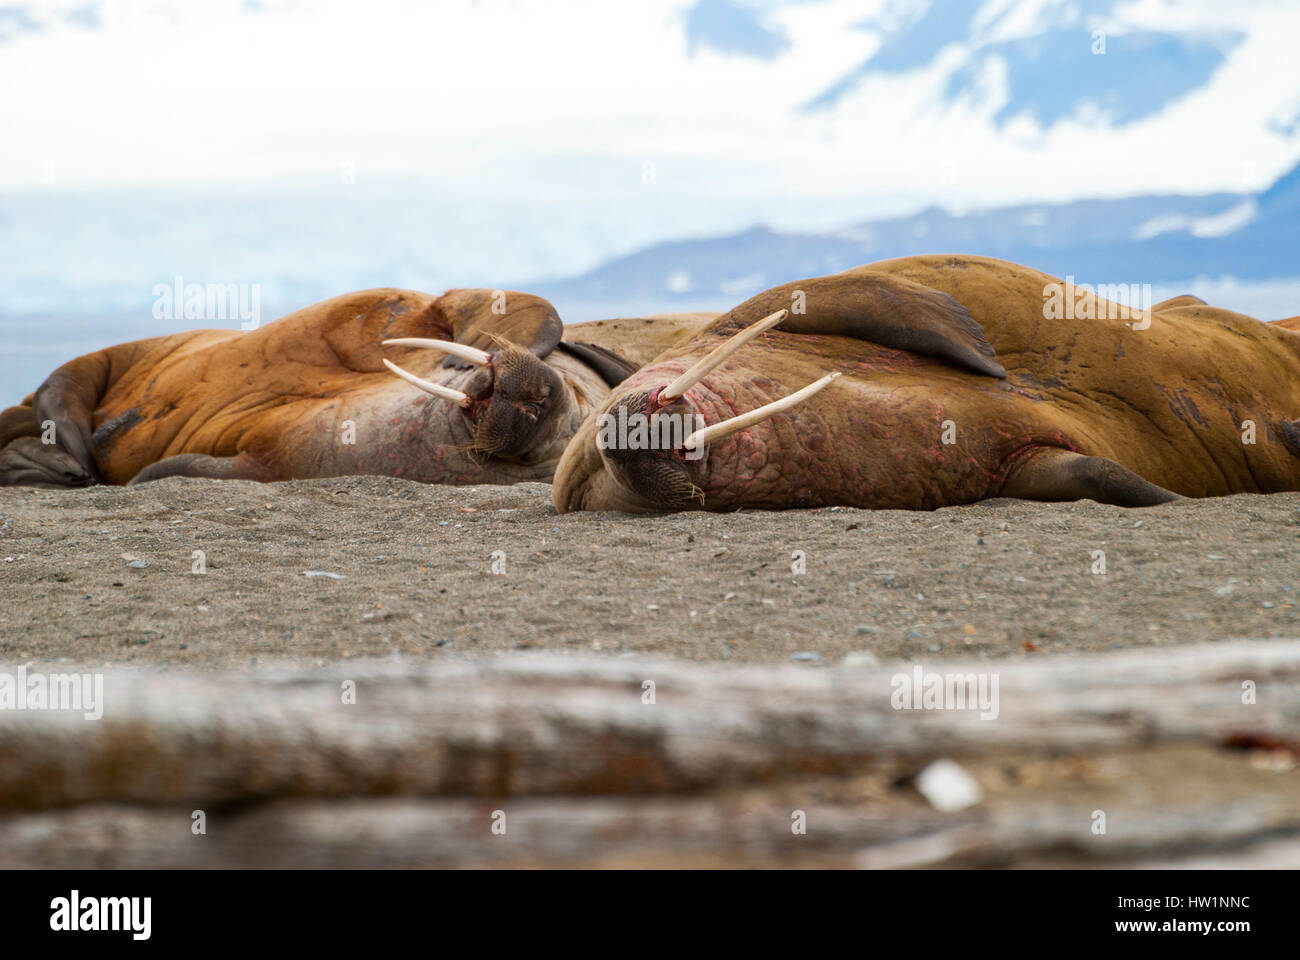 Walruses lying on the shore in Svalbard, Arctic - Stock Image